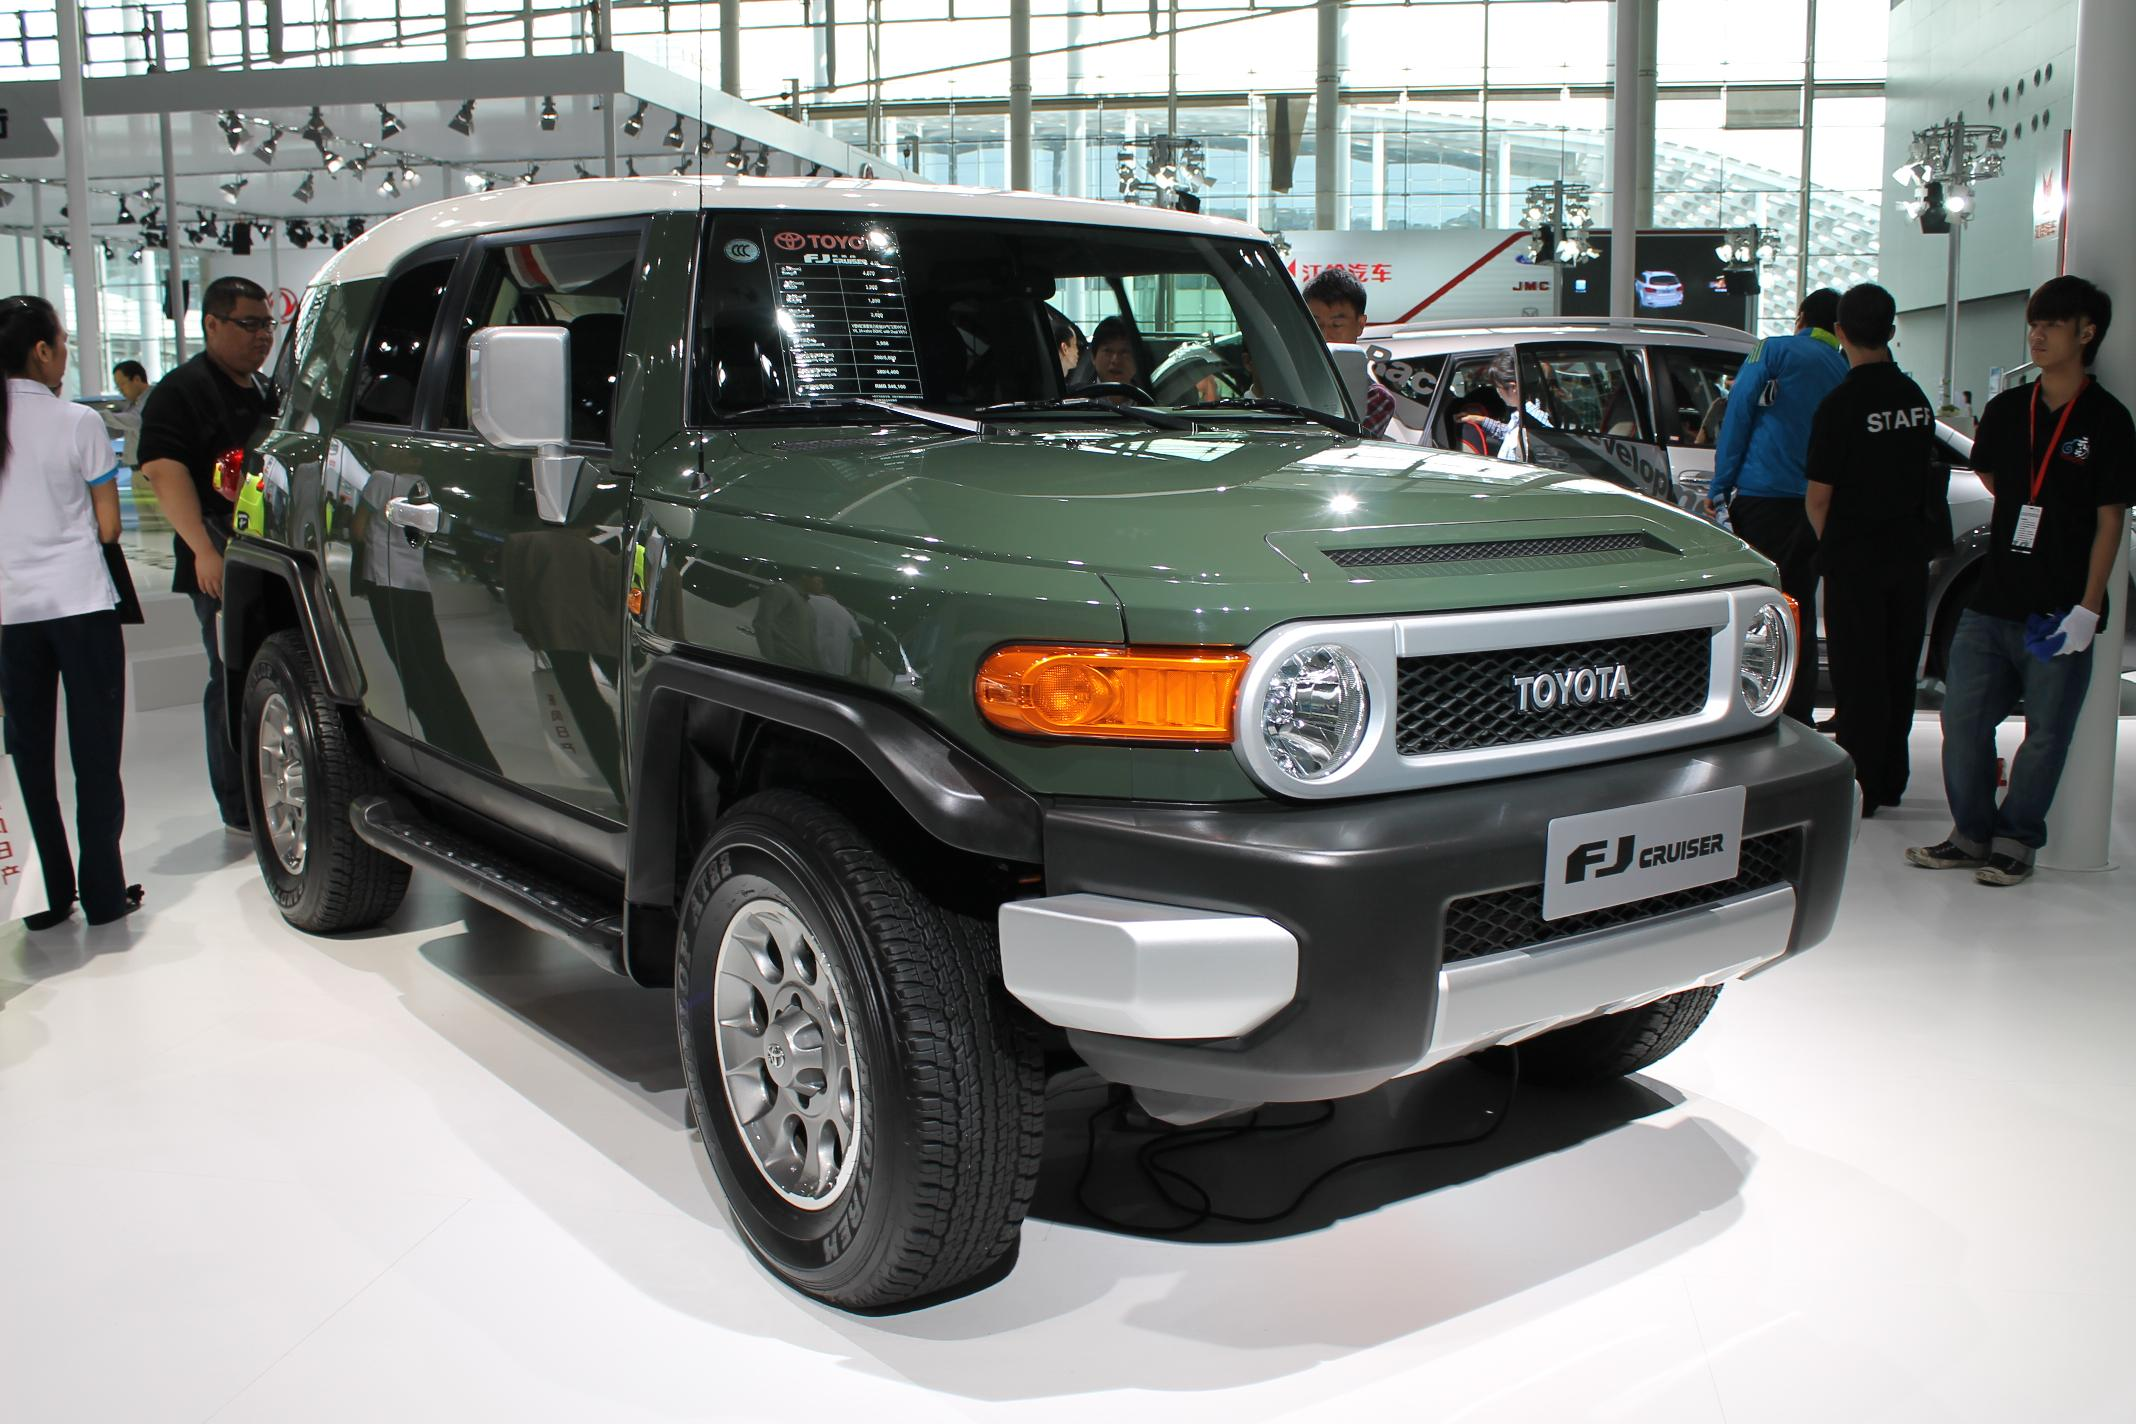 The FJ Cruiser was never officially introduced to the UK, but many were imported